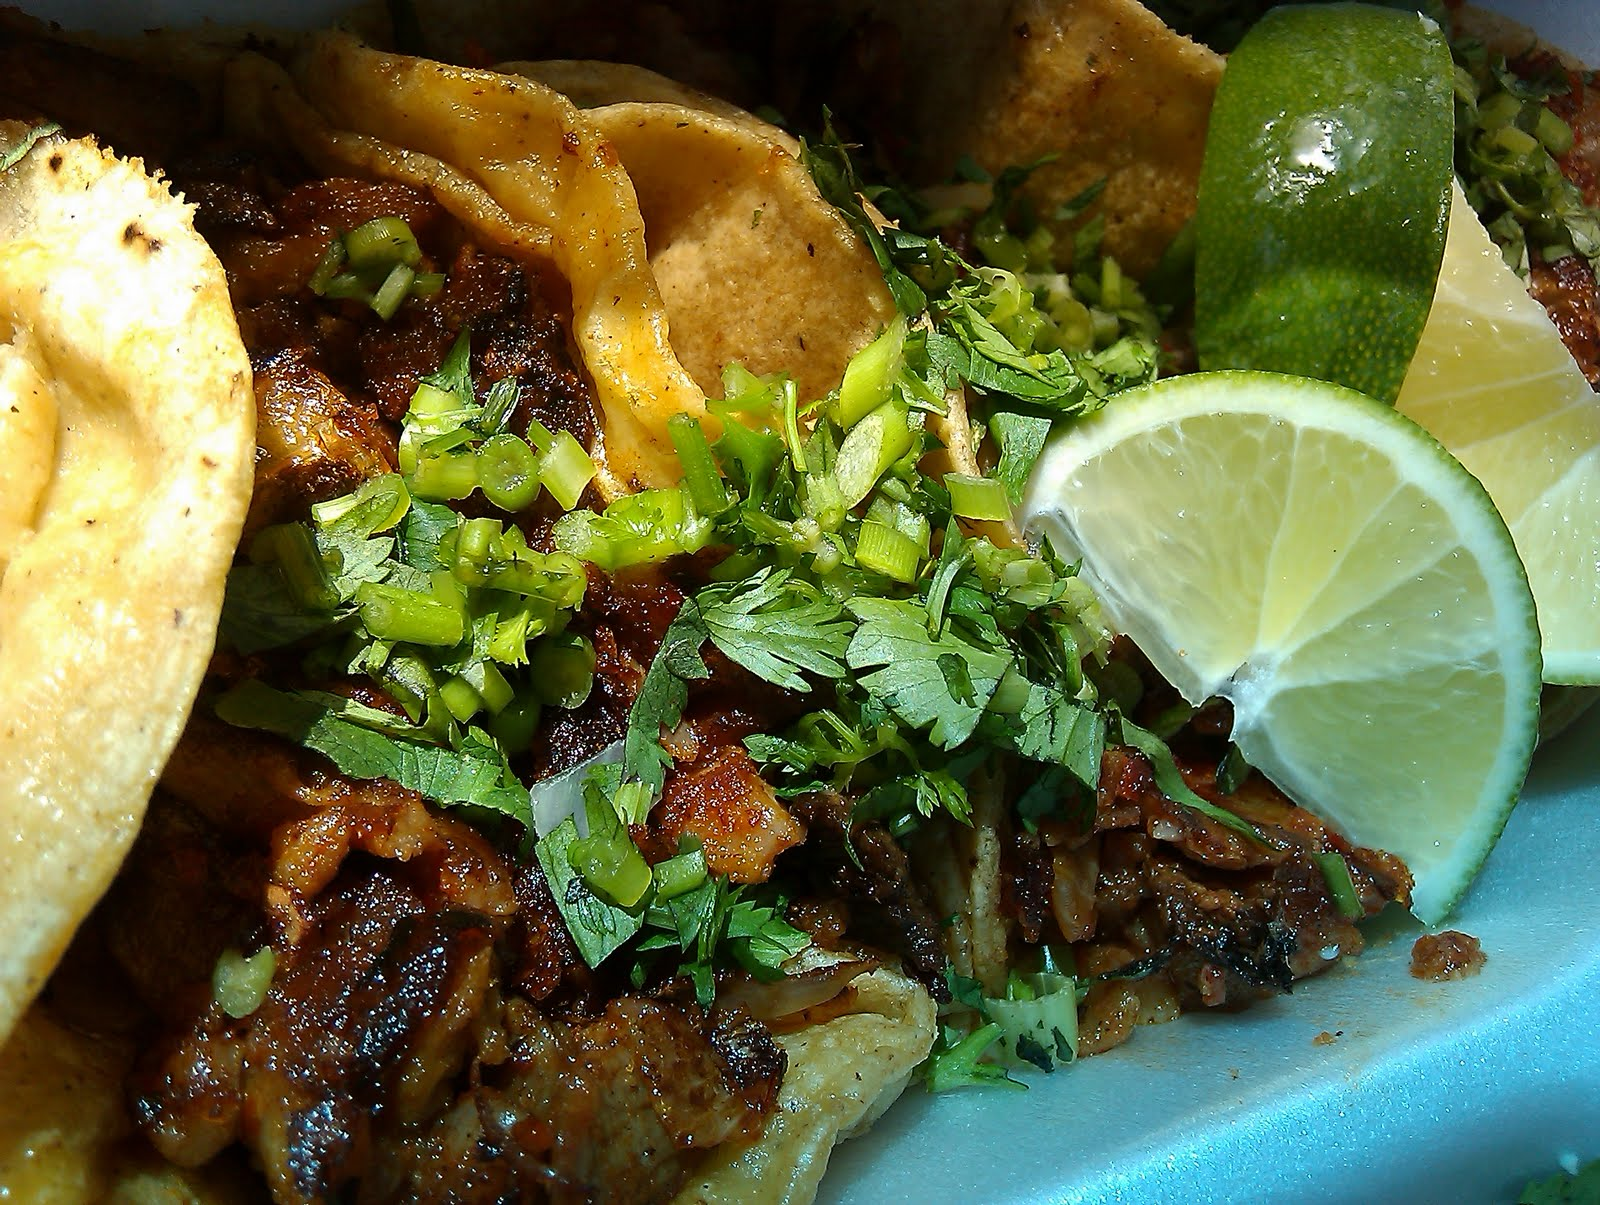 Summer lunch: restaurant tacos | Fed Up With Lunch